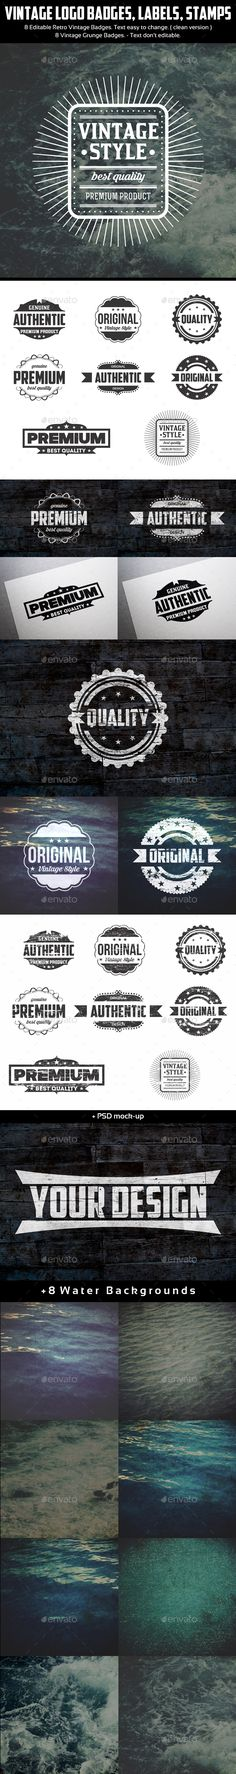 Vintage Logo Badges Labels Stamps Template Vector EPS, AI. Download here: http://graphicriver.net/item/vintage-logo-badges-labels-stamps/15642966?ref=ksioks